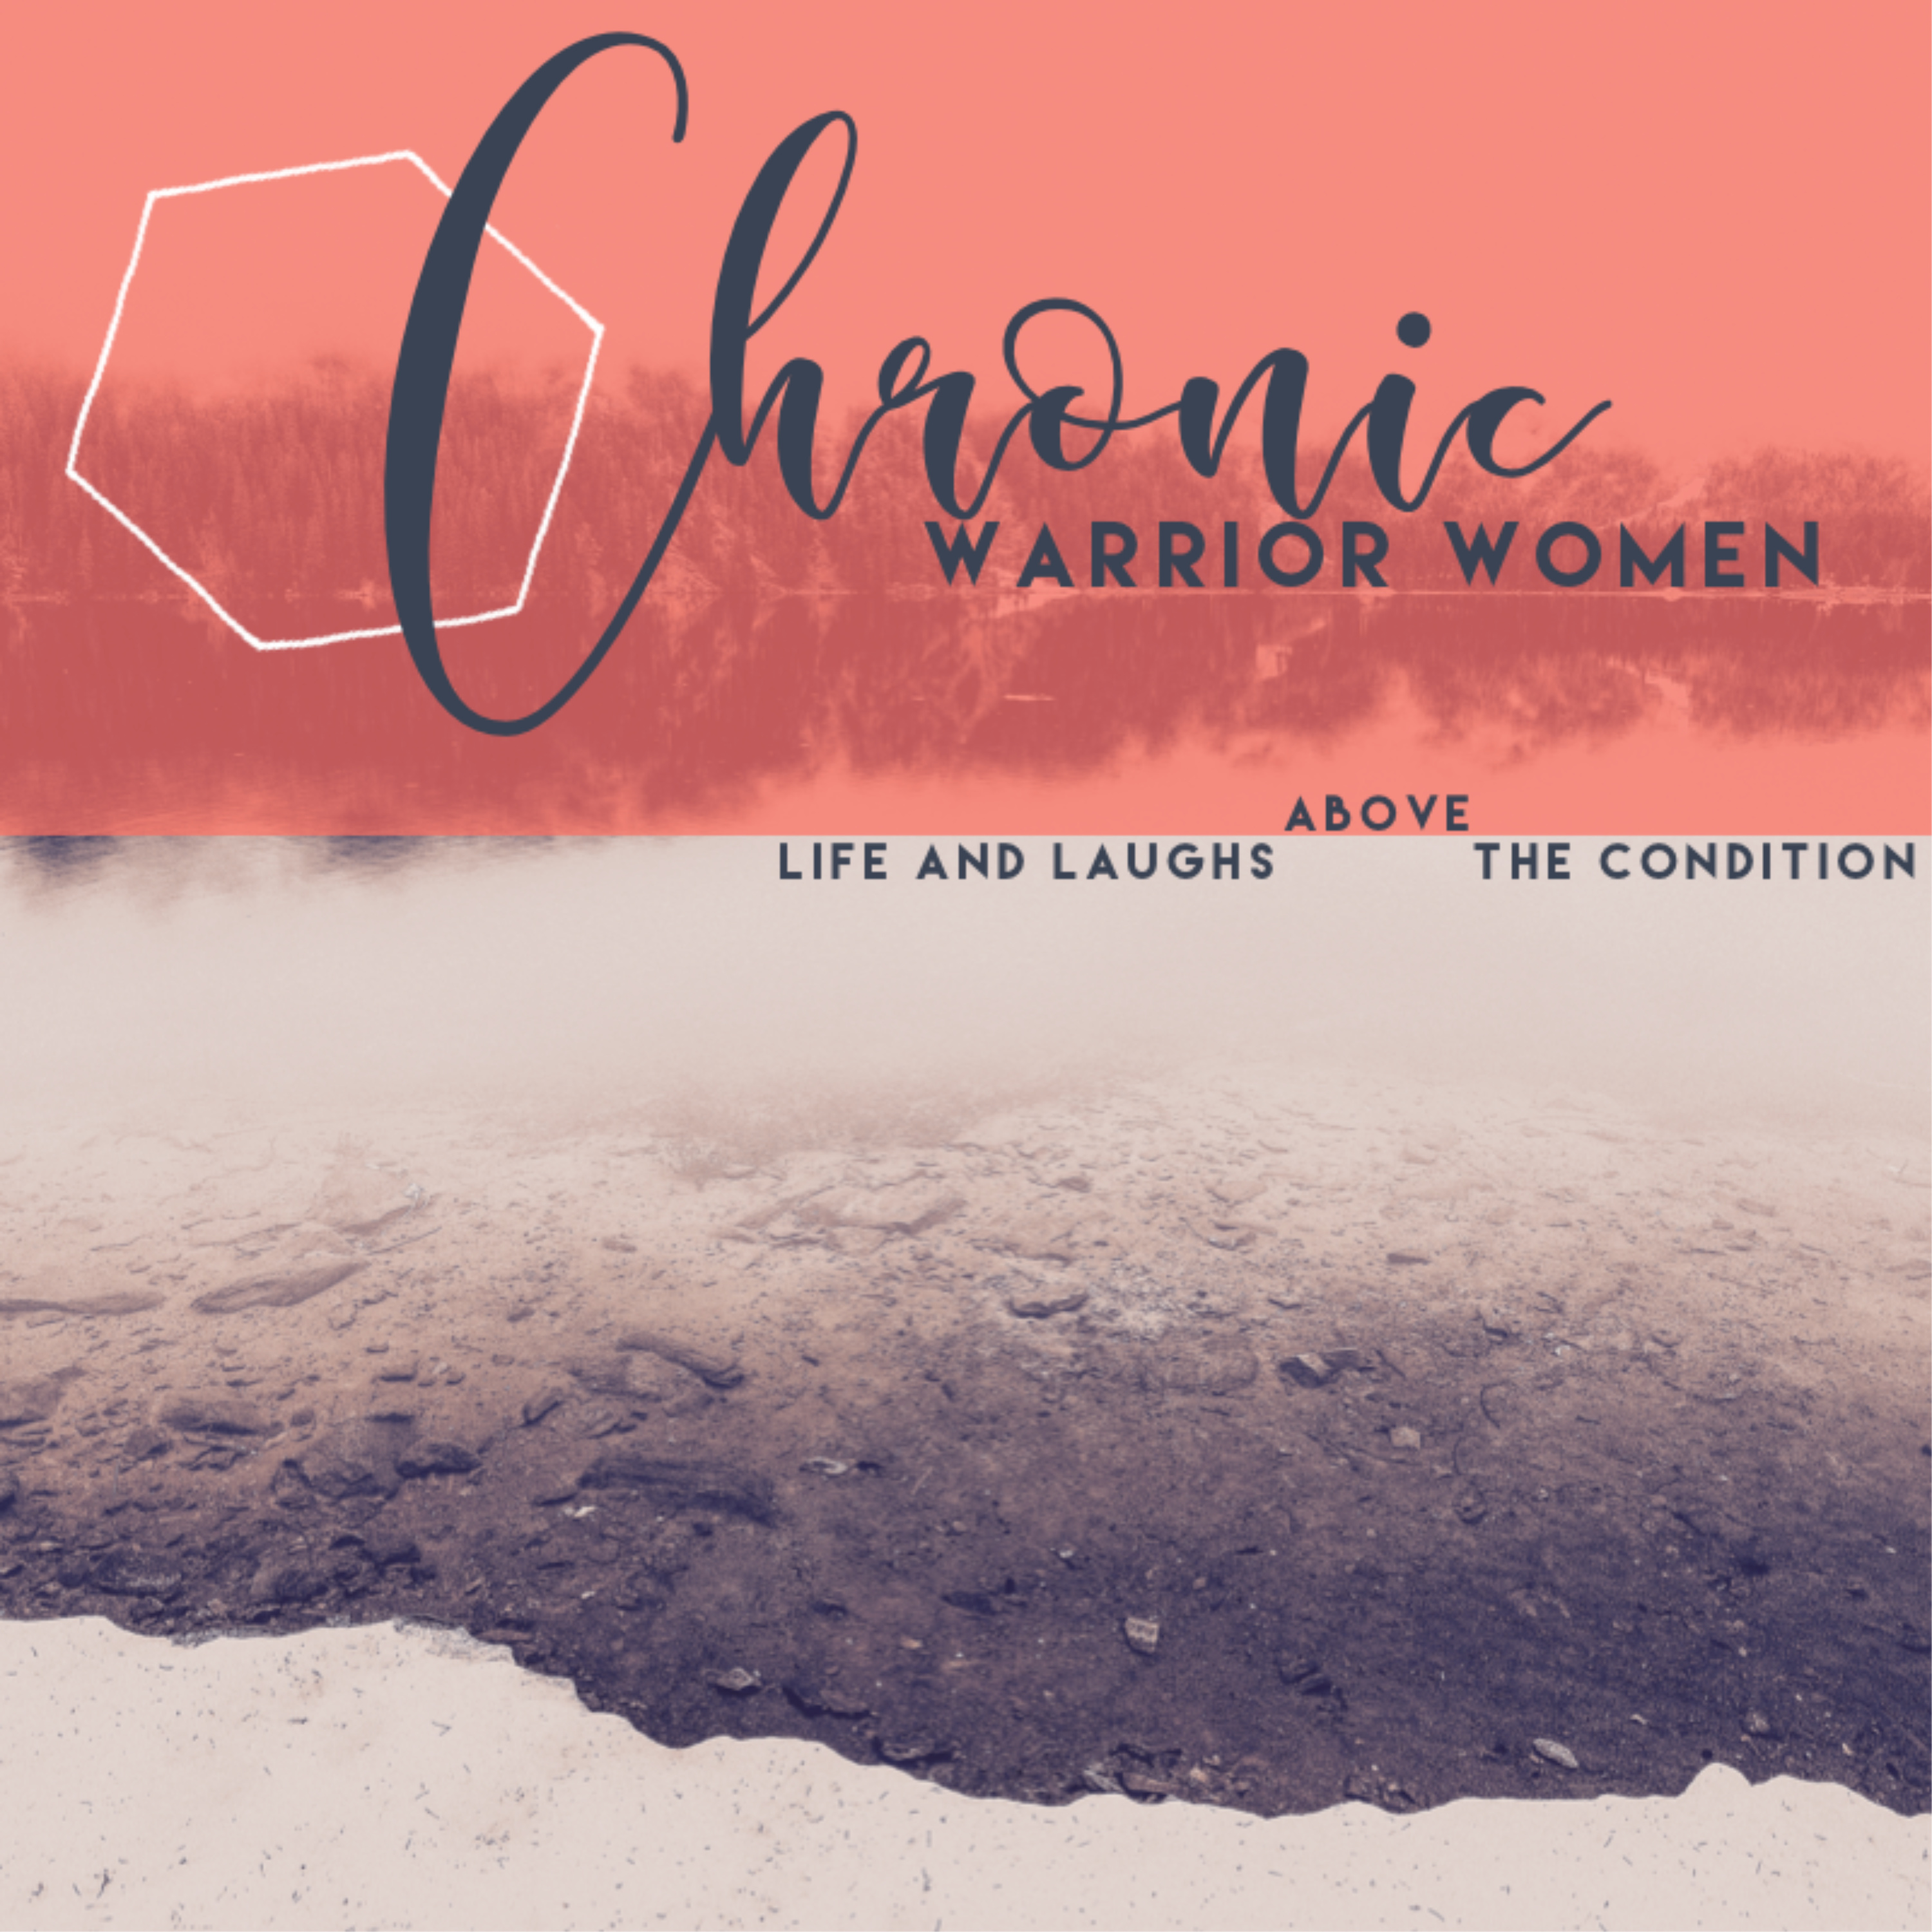 Chronic Warrior Women